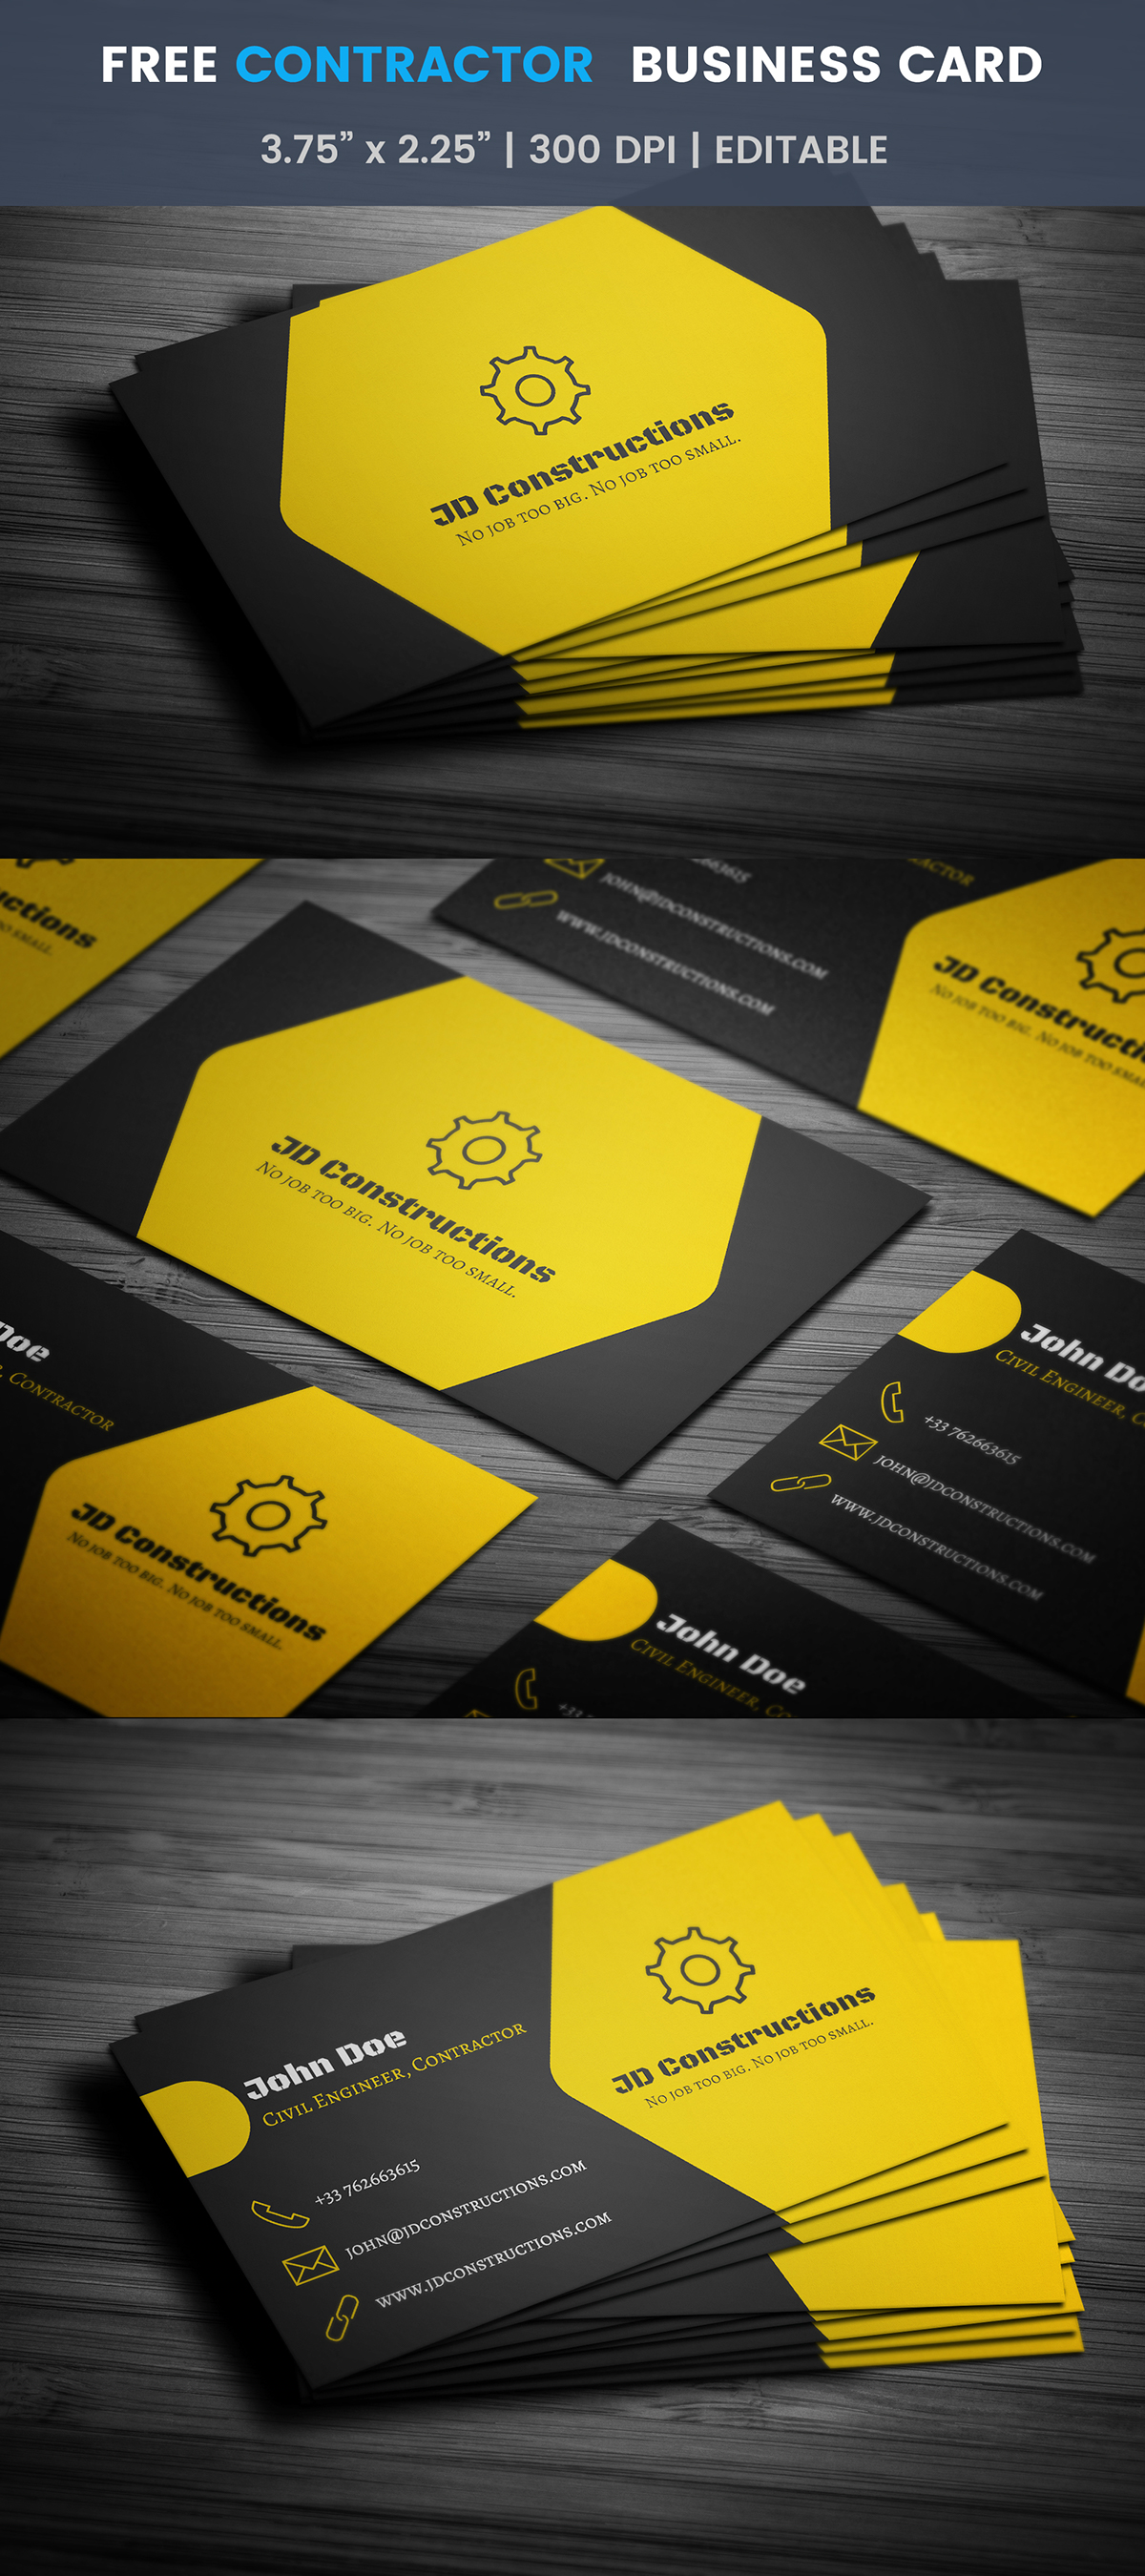 Free construction business card template on student show free construction business card template fbccfo Images